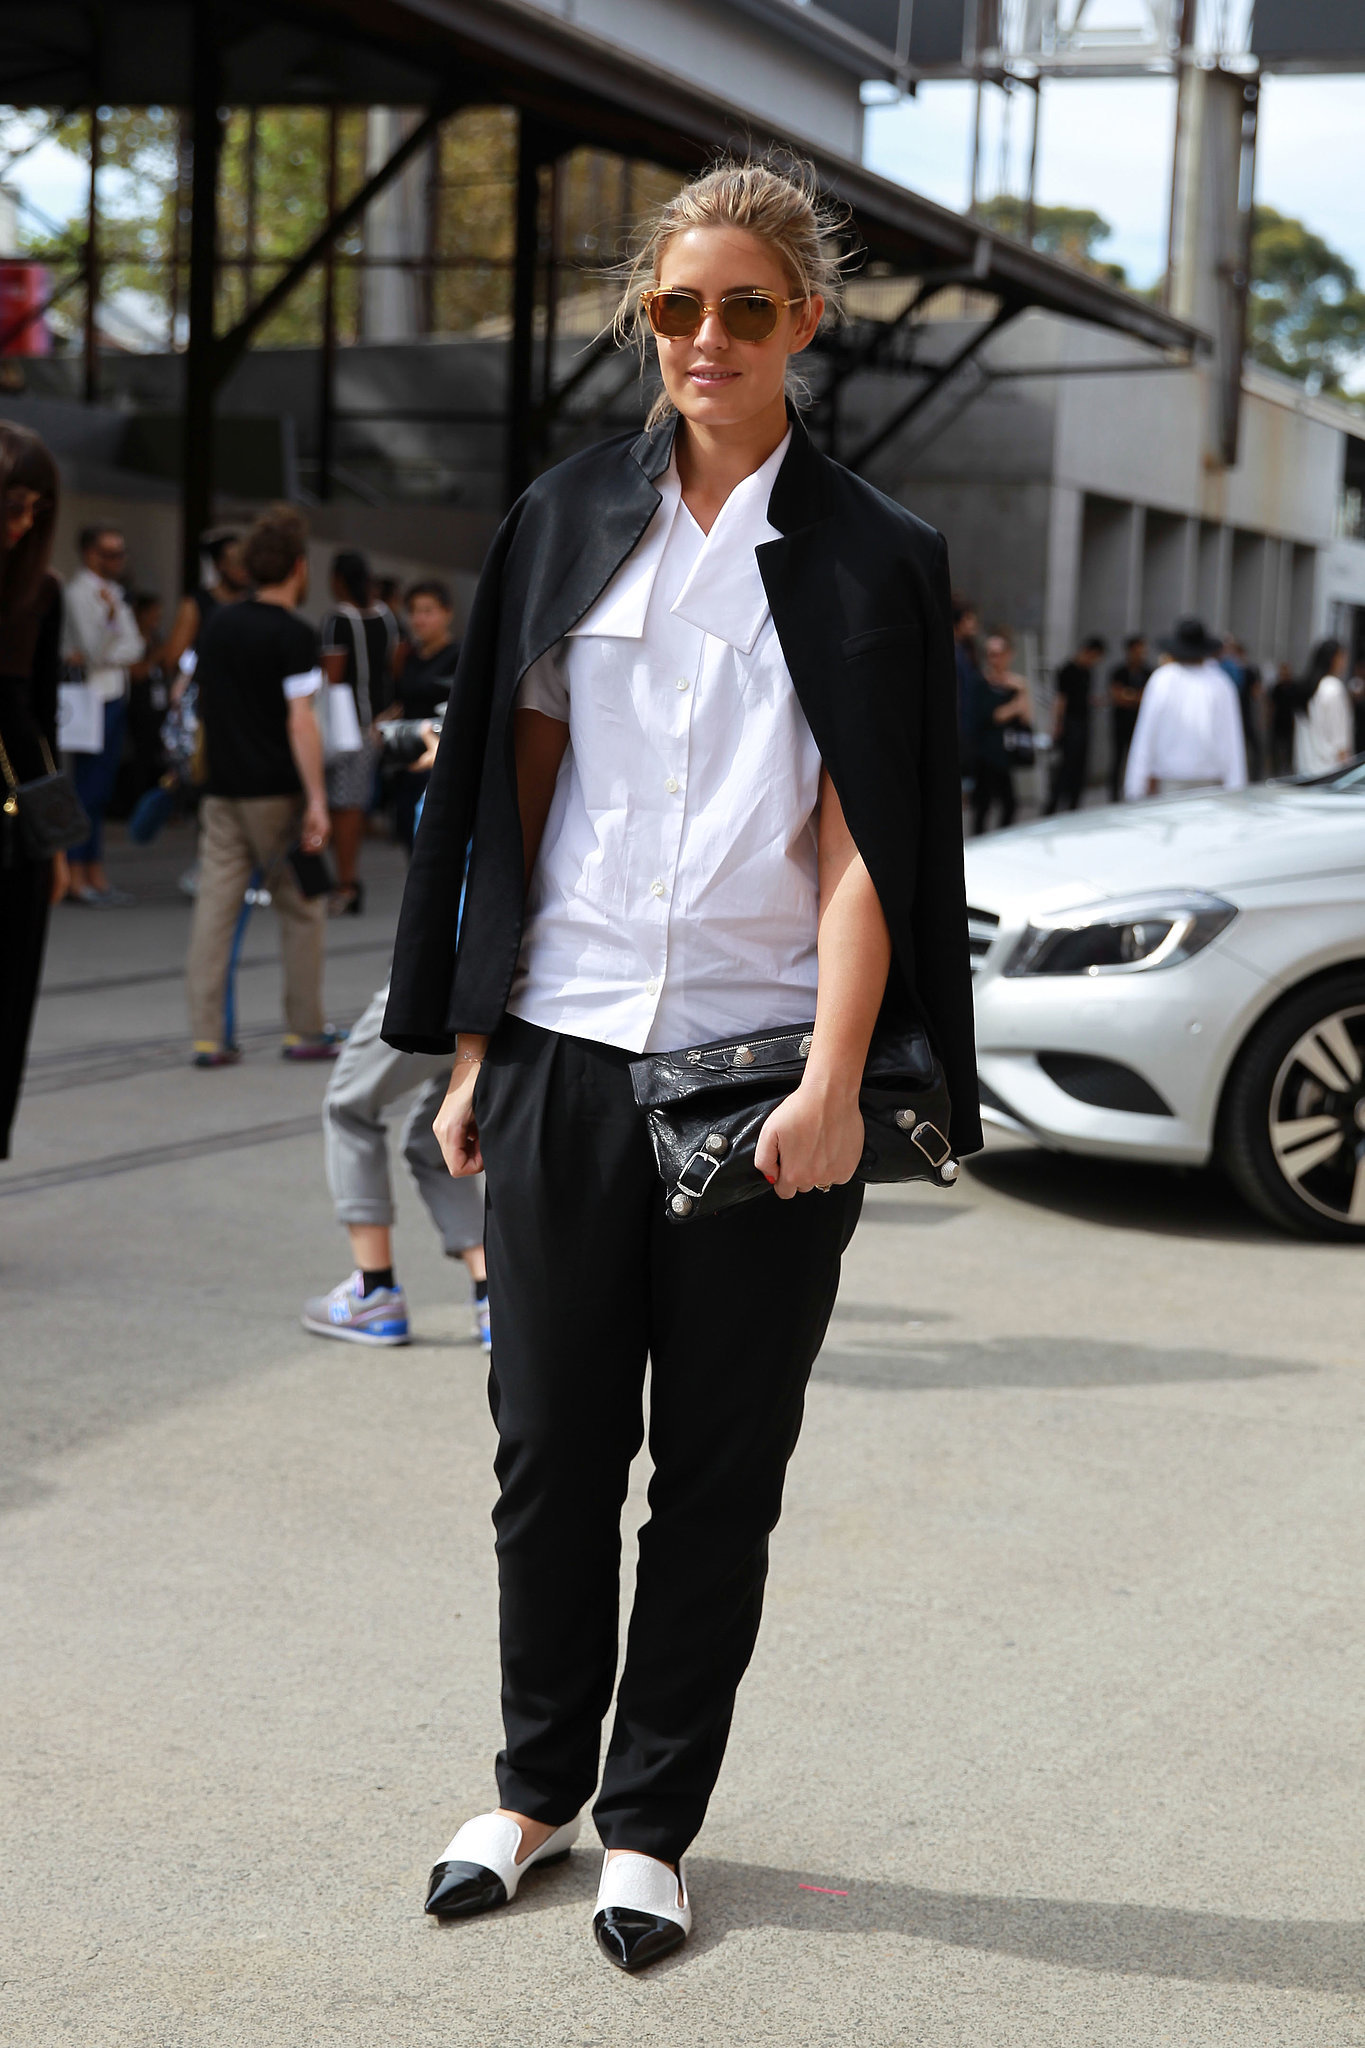 Street Style At Australia Fashion Week Over 50 Must See Street Snaps From Sydney Fashion Week